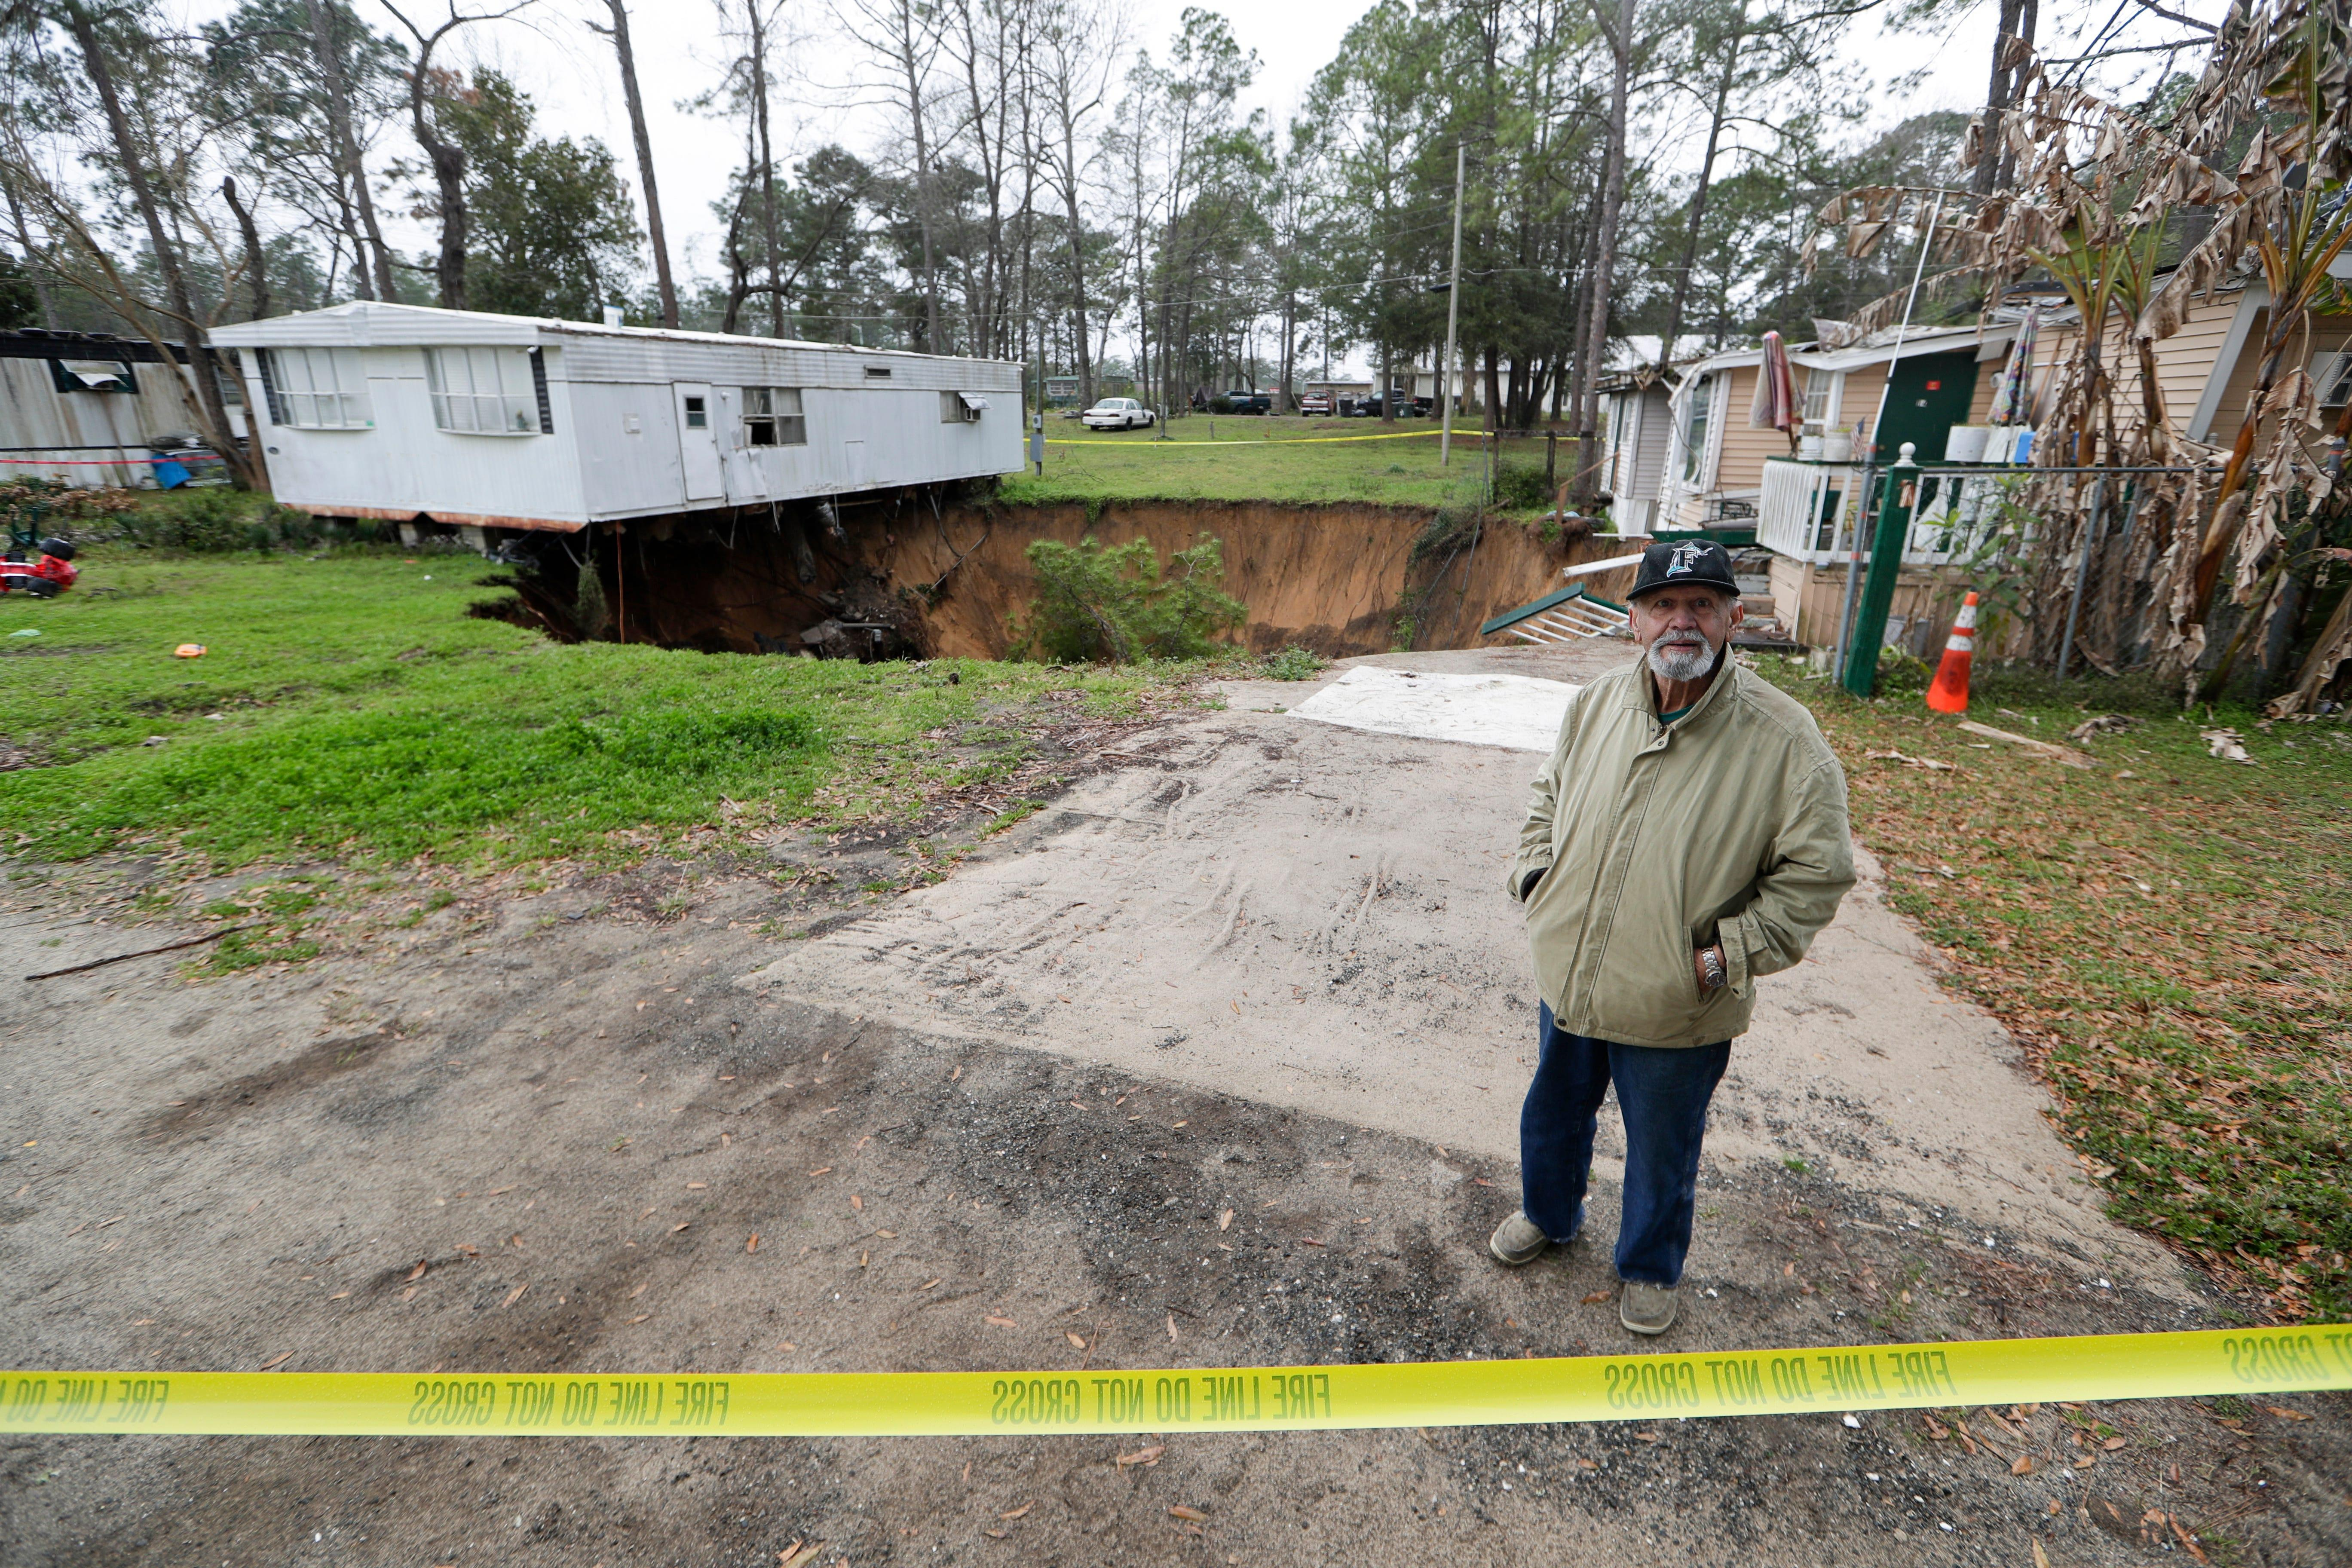 'Unbelievable': Giant sinkhole threatens to swallow two homes in Florida